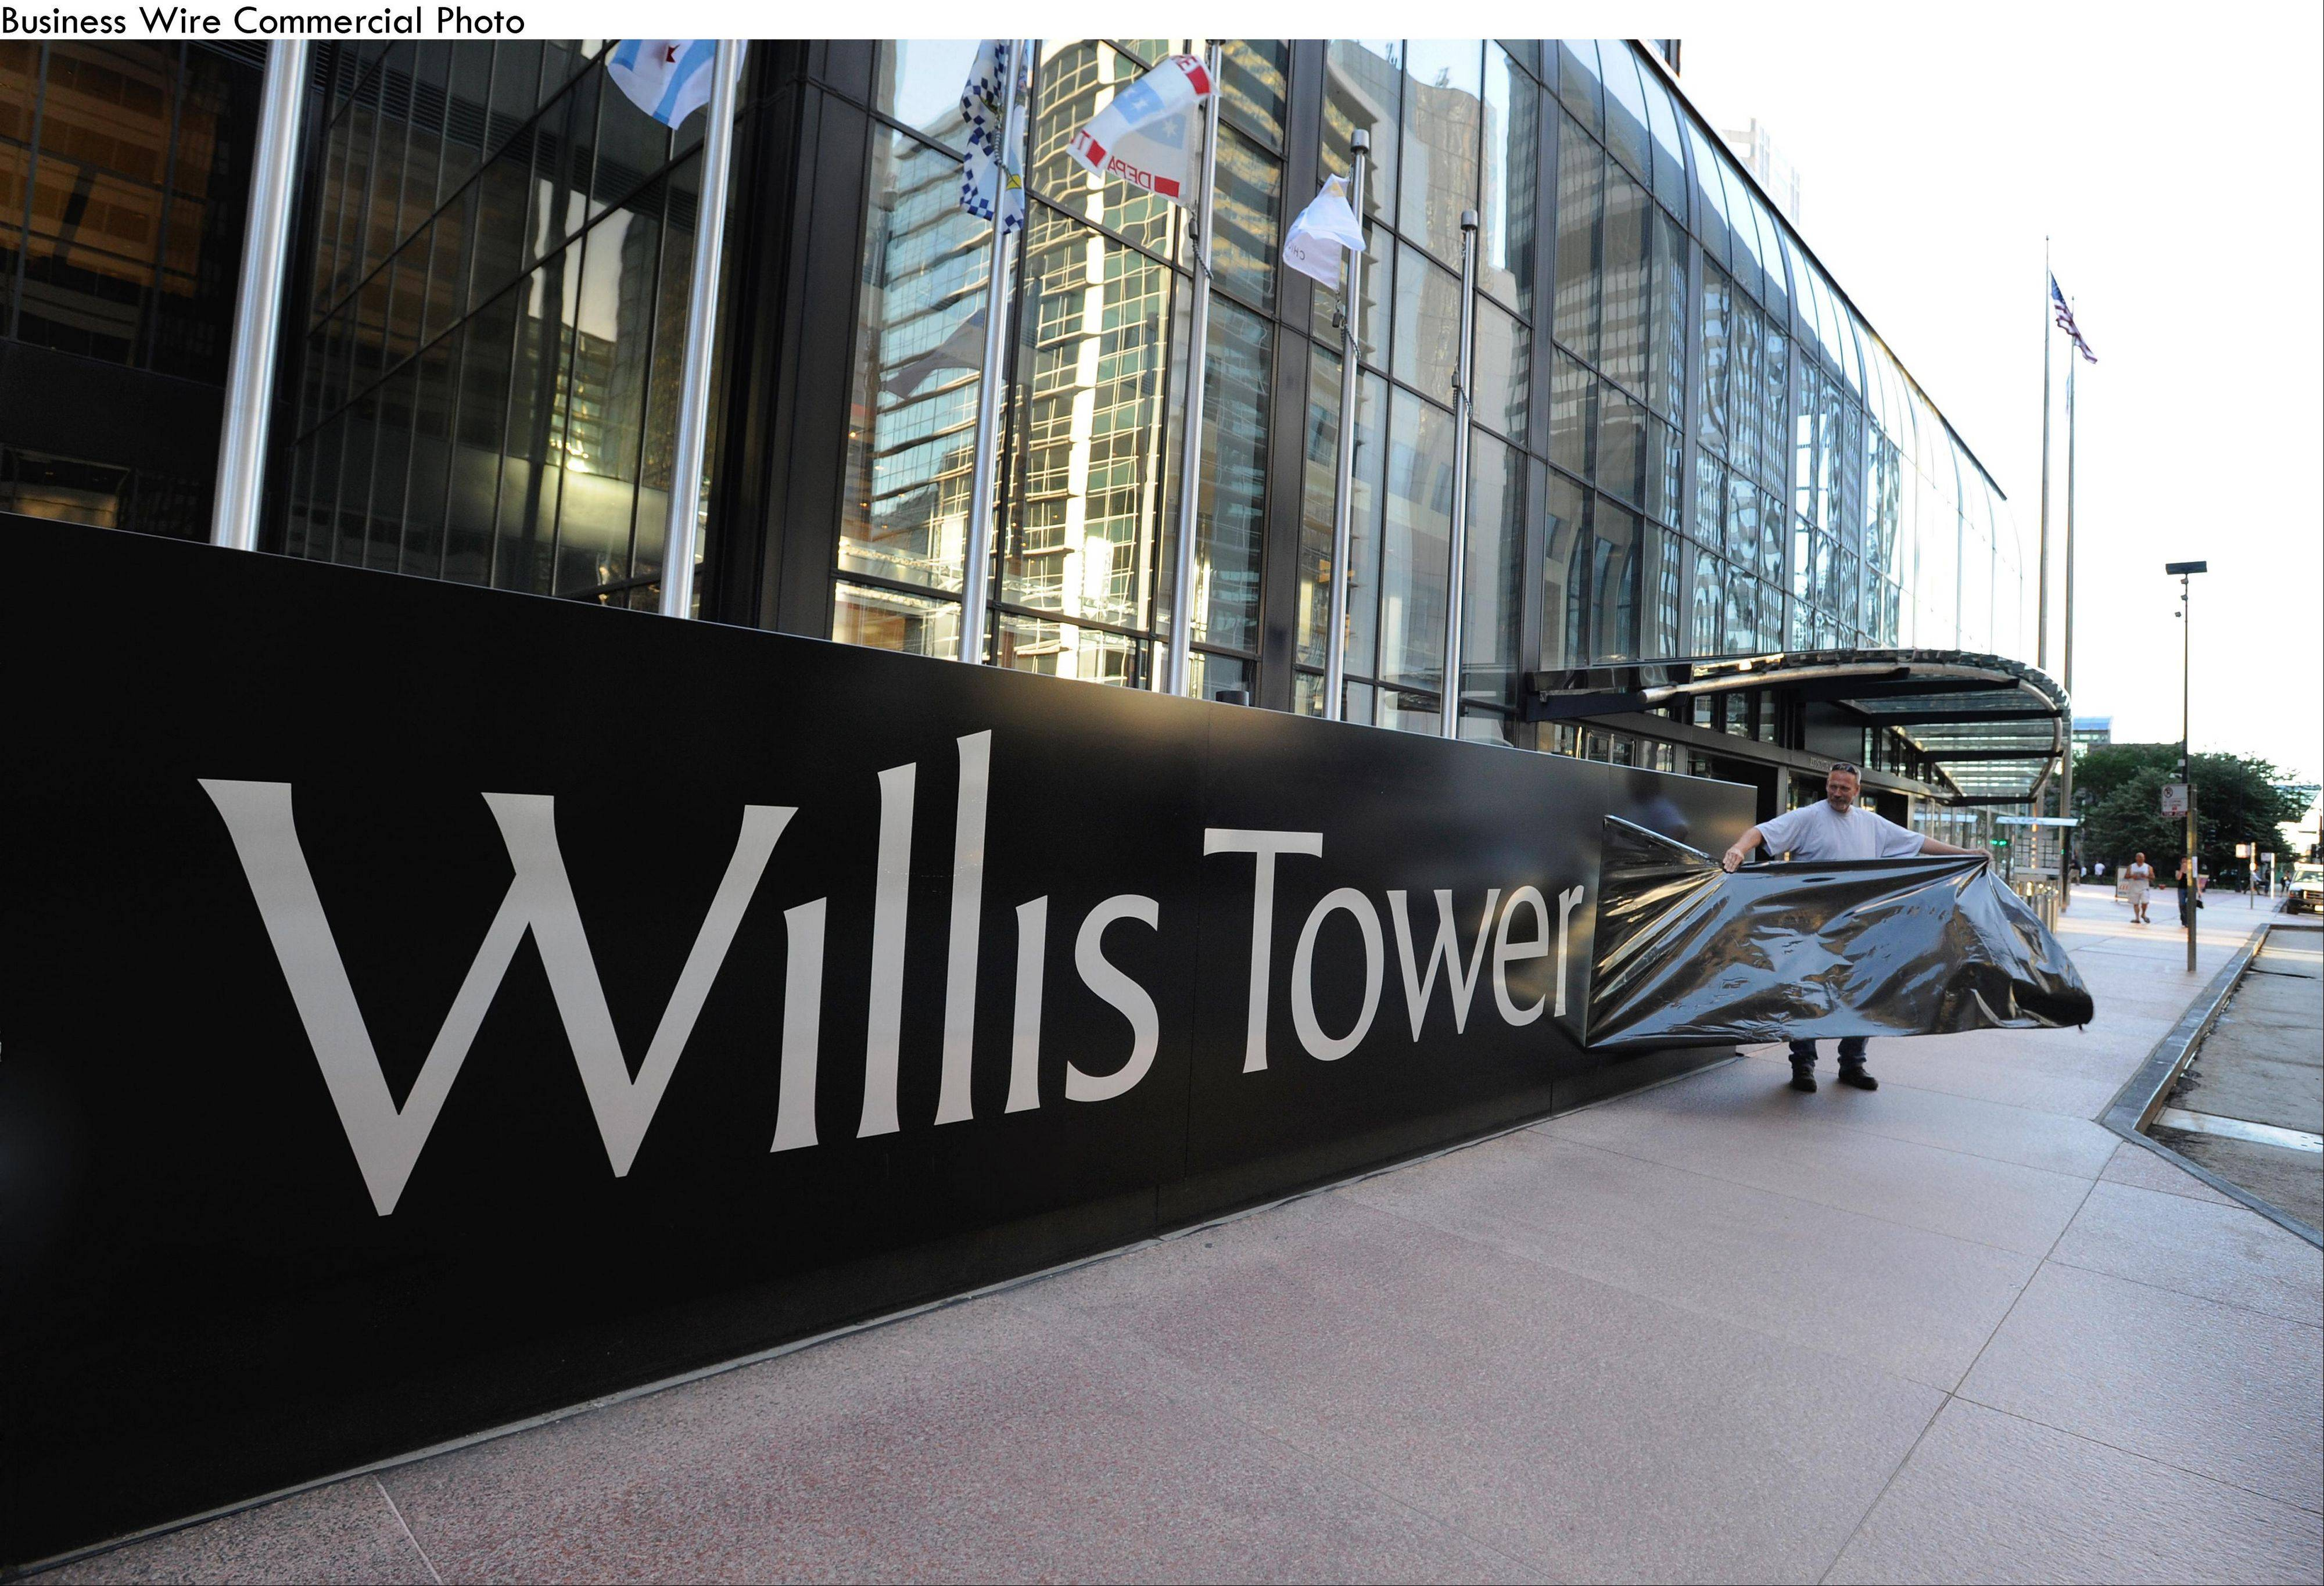 Mayor Rahm Emanuel's office said Monday morning that United also will forgo nearly $10 million in additional city grant money because it is leaving the site and consolidating at Willis Tower.